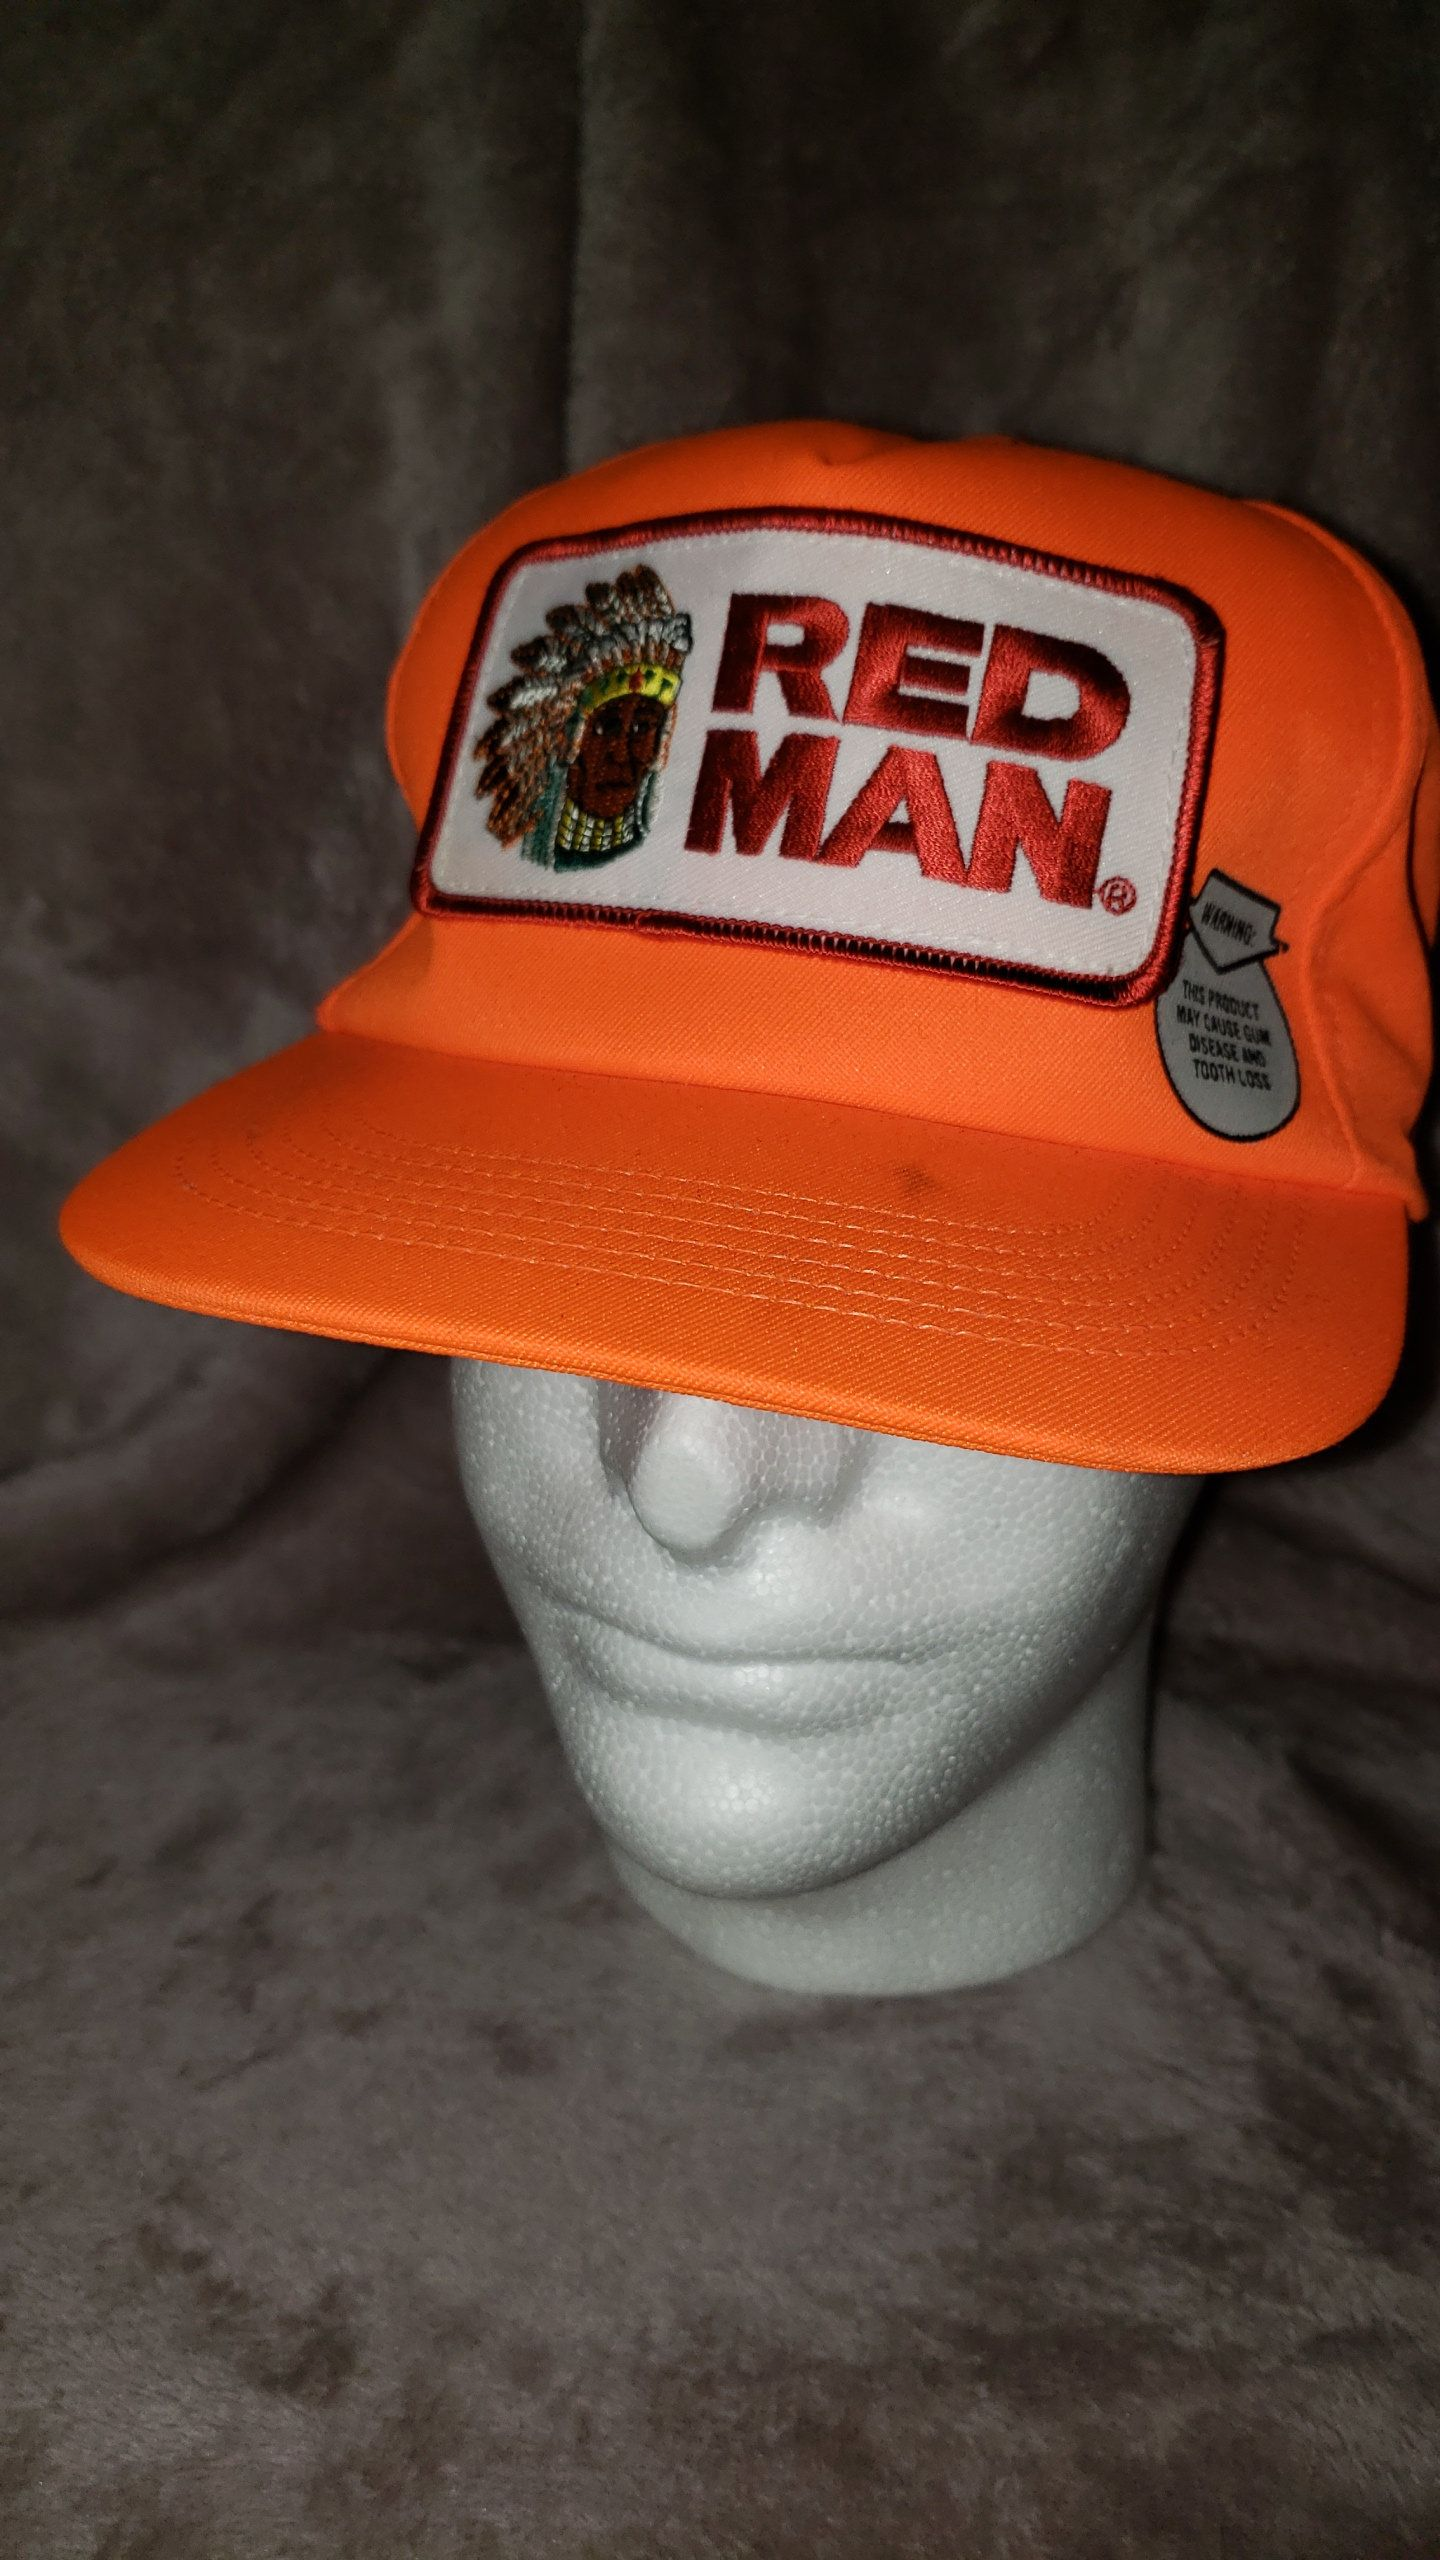 3f3b5143d9 Vintage 80 s Red Man Chewing Tobacco Blaze Orange Hunters Patch Snapback  Hat Cap Fashion Hype Urban Hip Hop Old School Throwback Gear by  RackRaidersVtg on ...